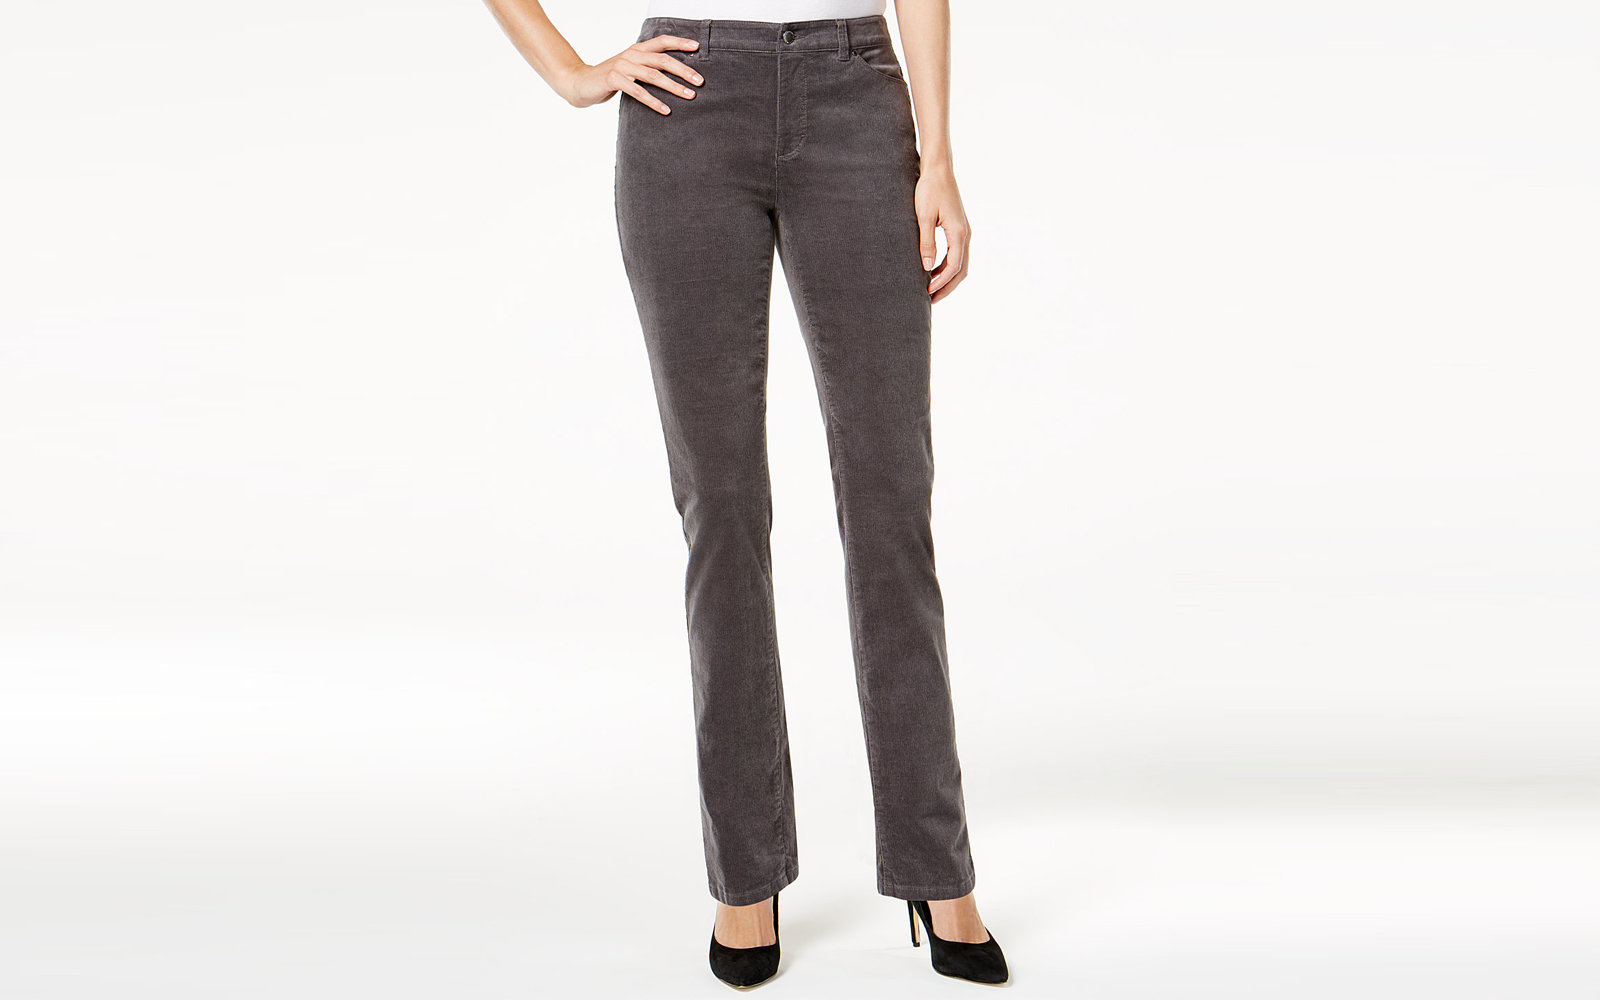 Charter Club Lexington Corduroy Straight-Leg Pants in Shadow Grey